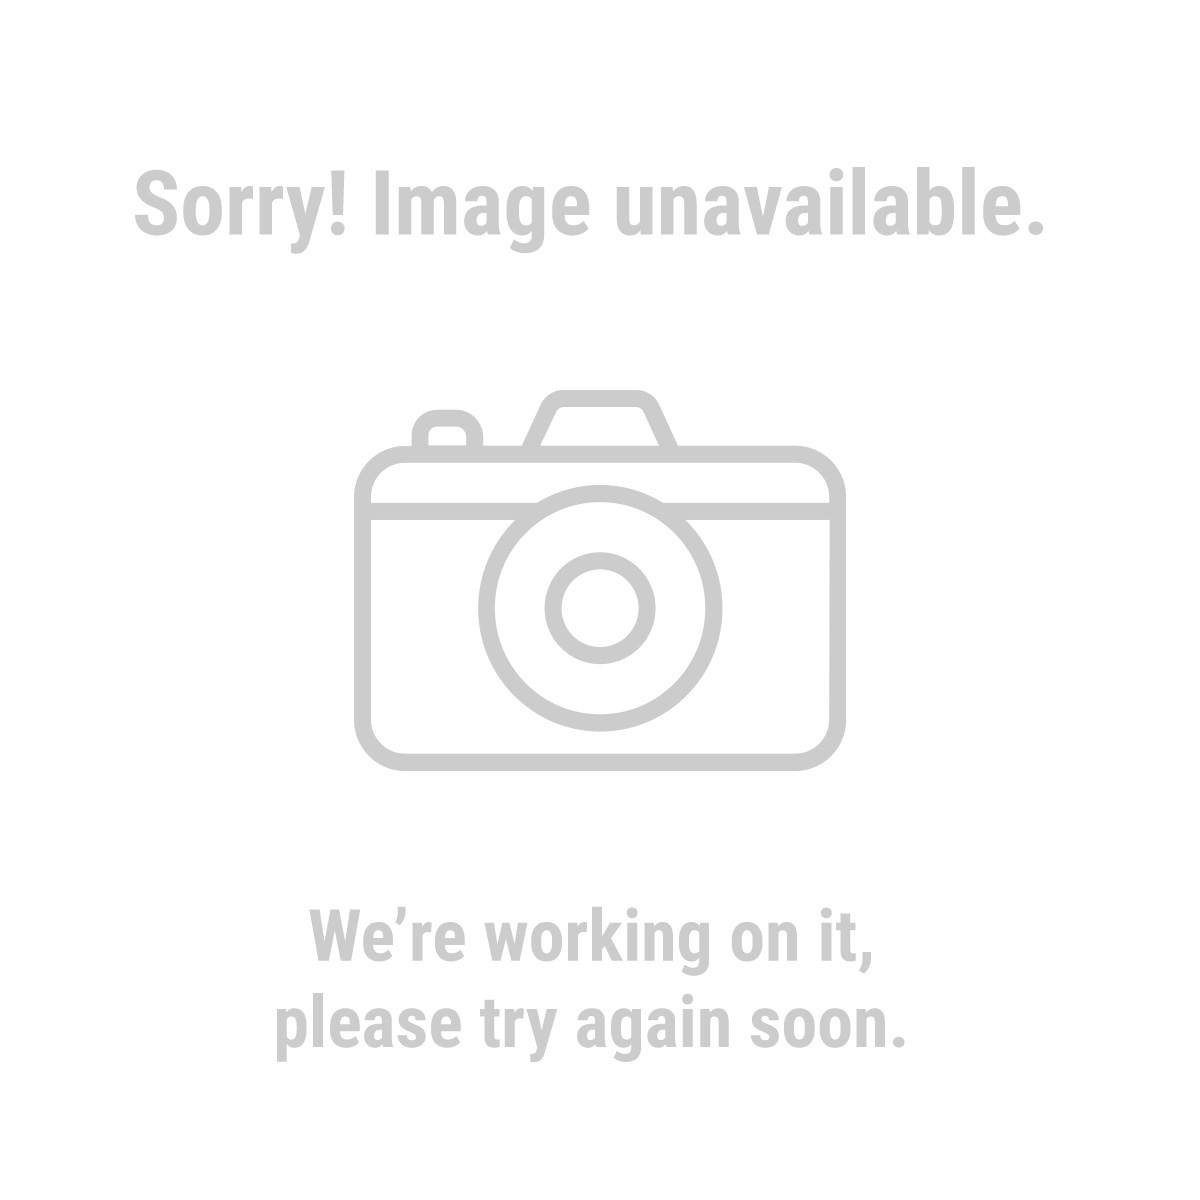 Diablo 63006 3/8 in. x 50 ft. Premium Rubber Air Hose